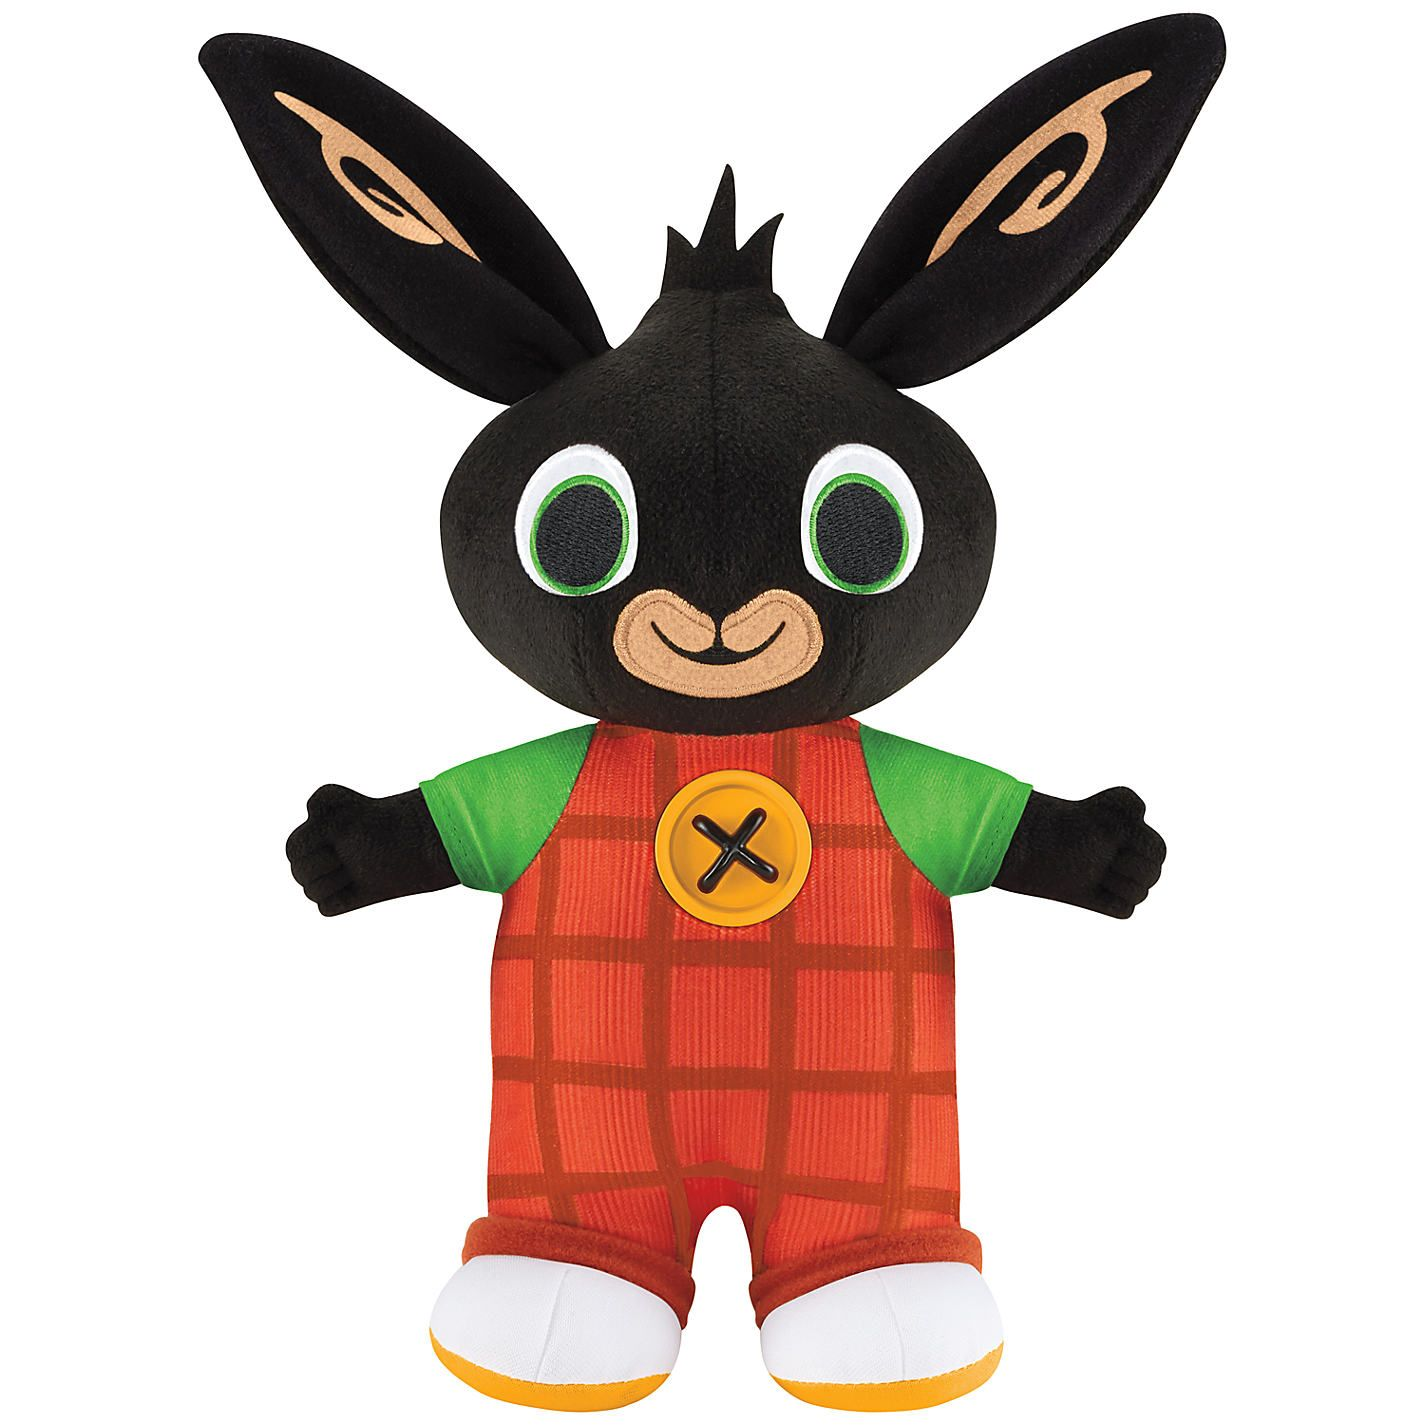 Bing Bunny Images Google Search Top Christmas Toys